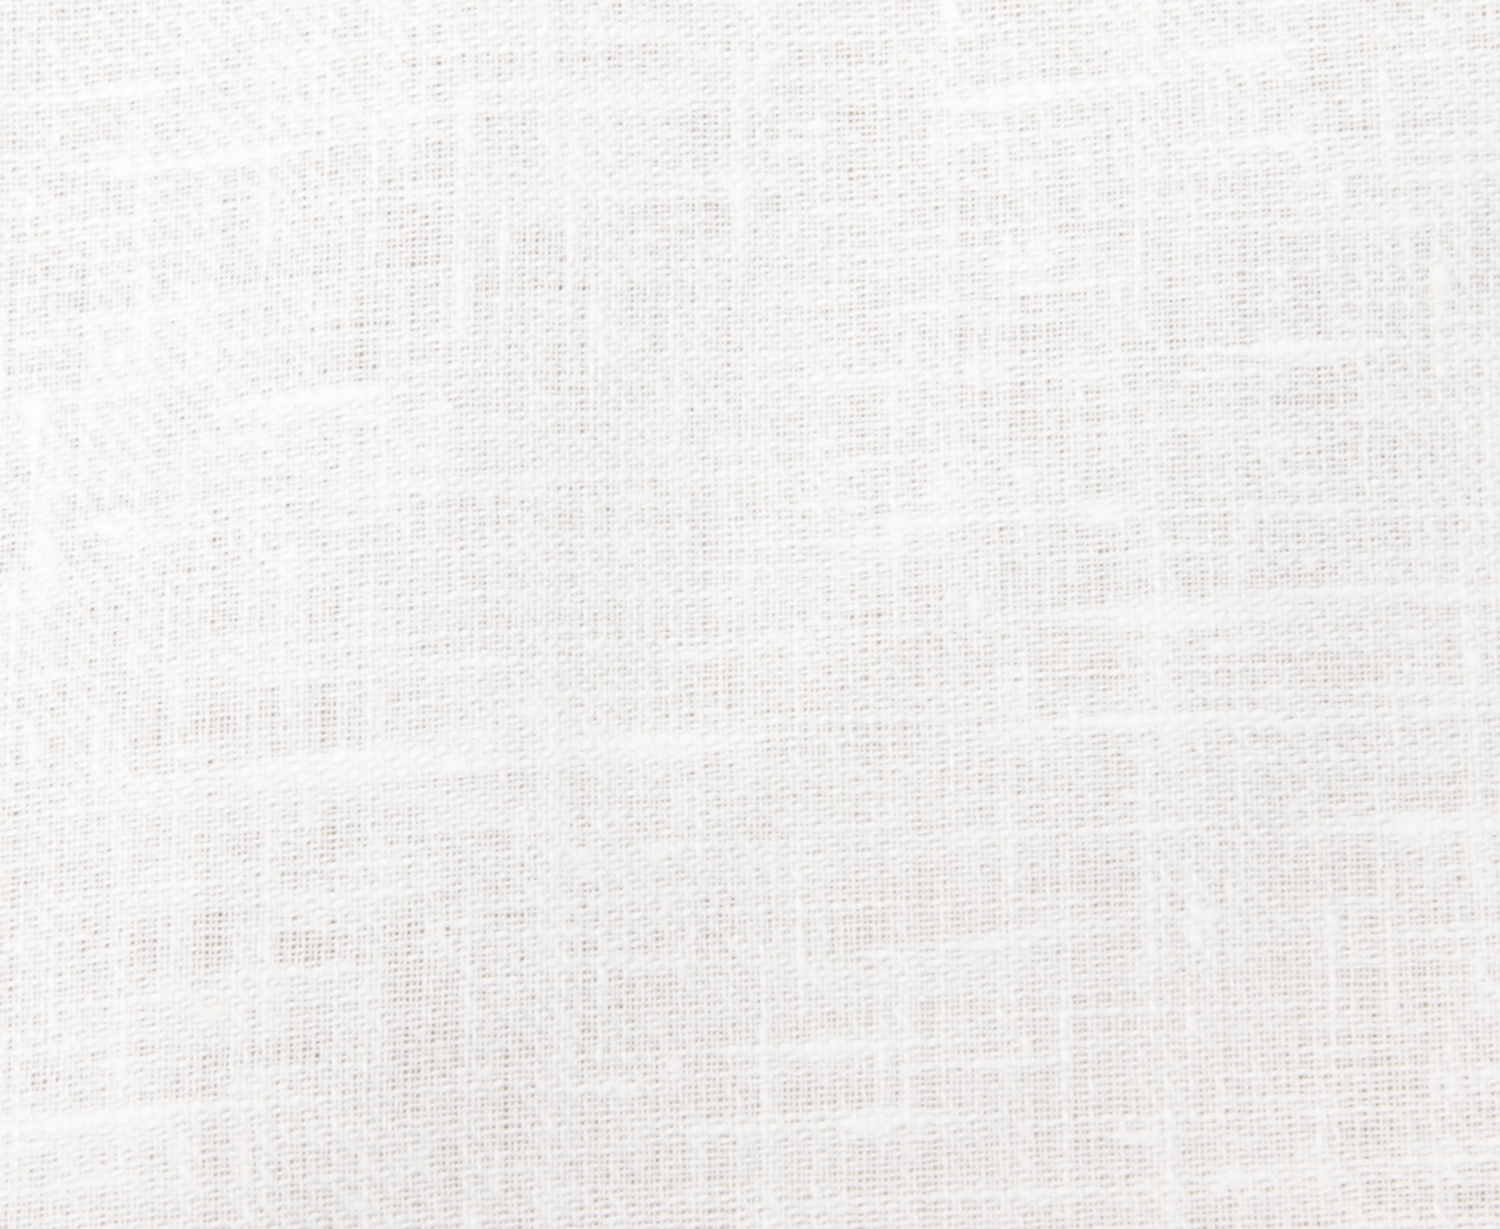 Linen Fabric Off White 3L280B (280g/m²) - Lovelin - Lino ...